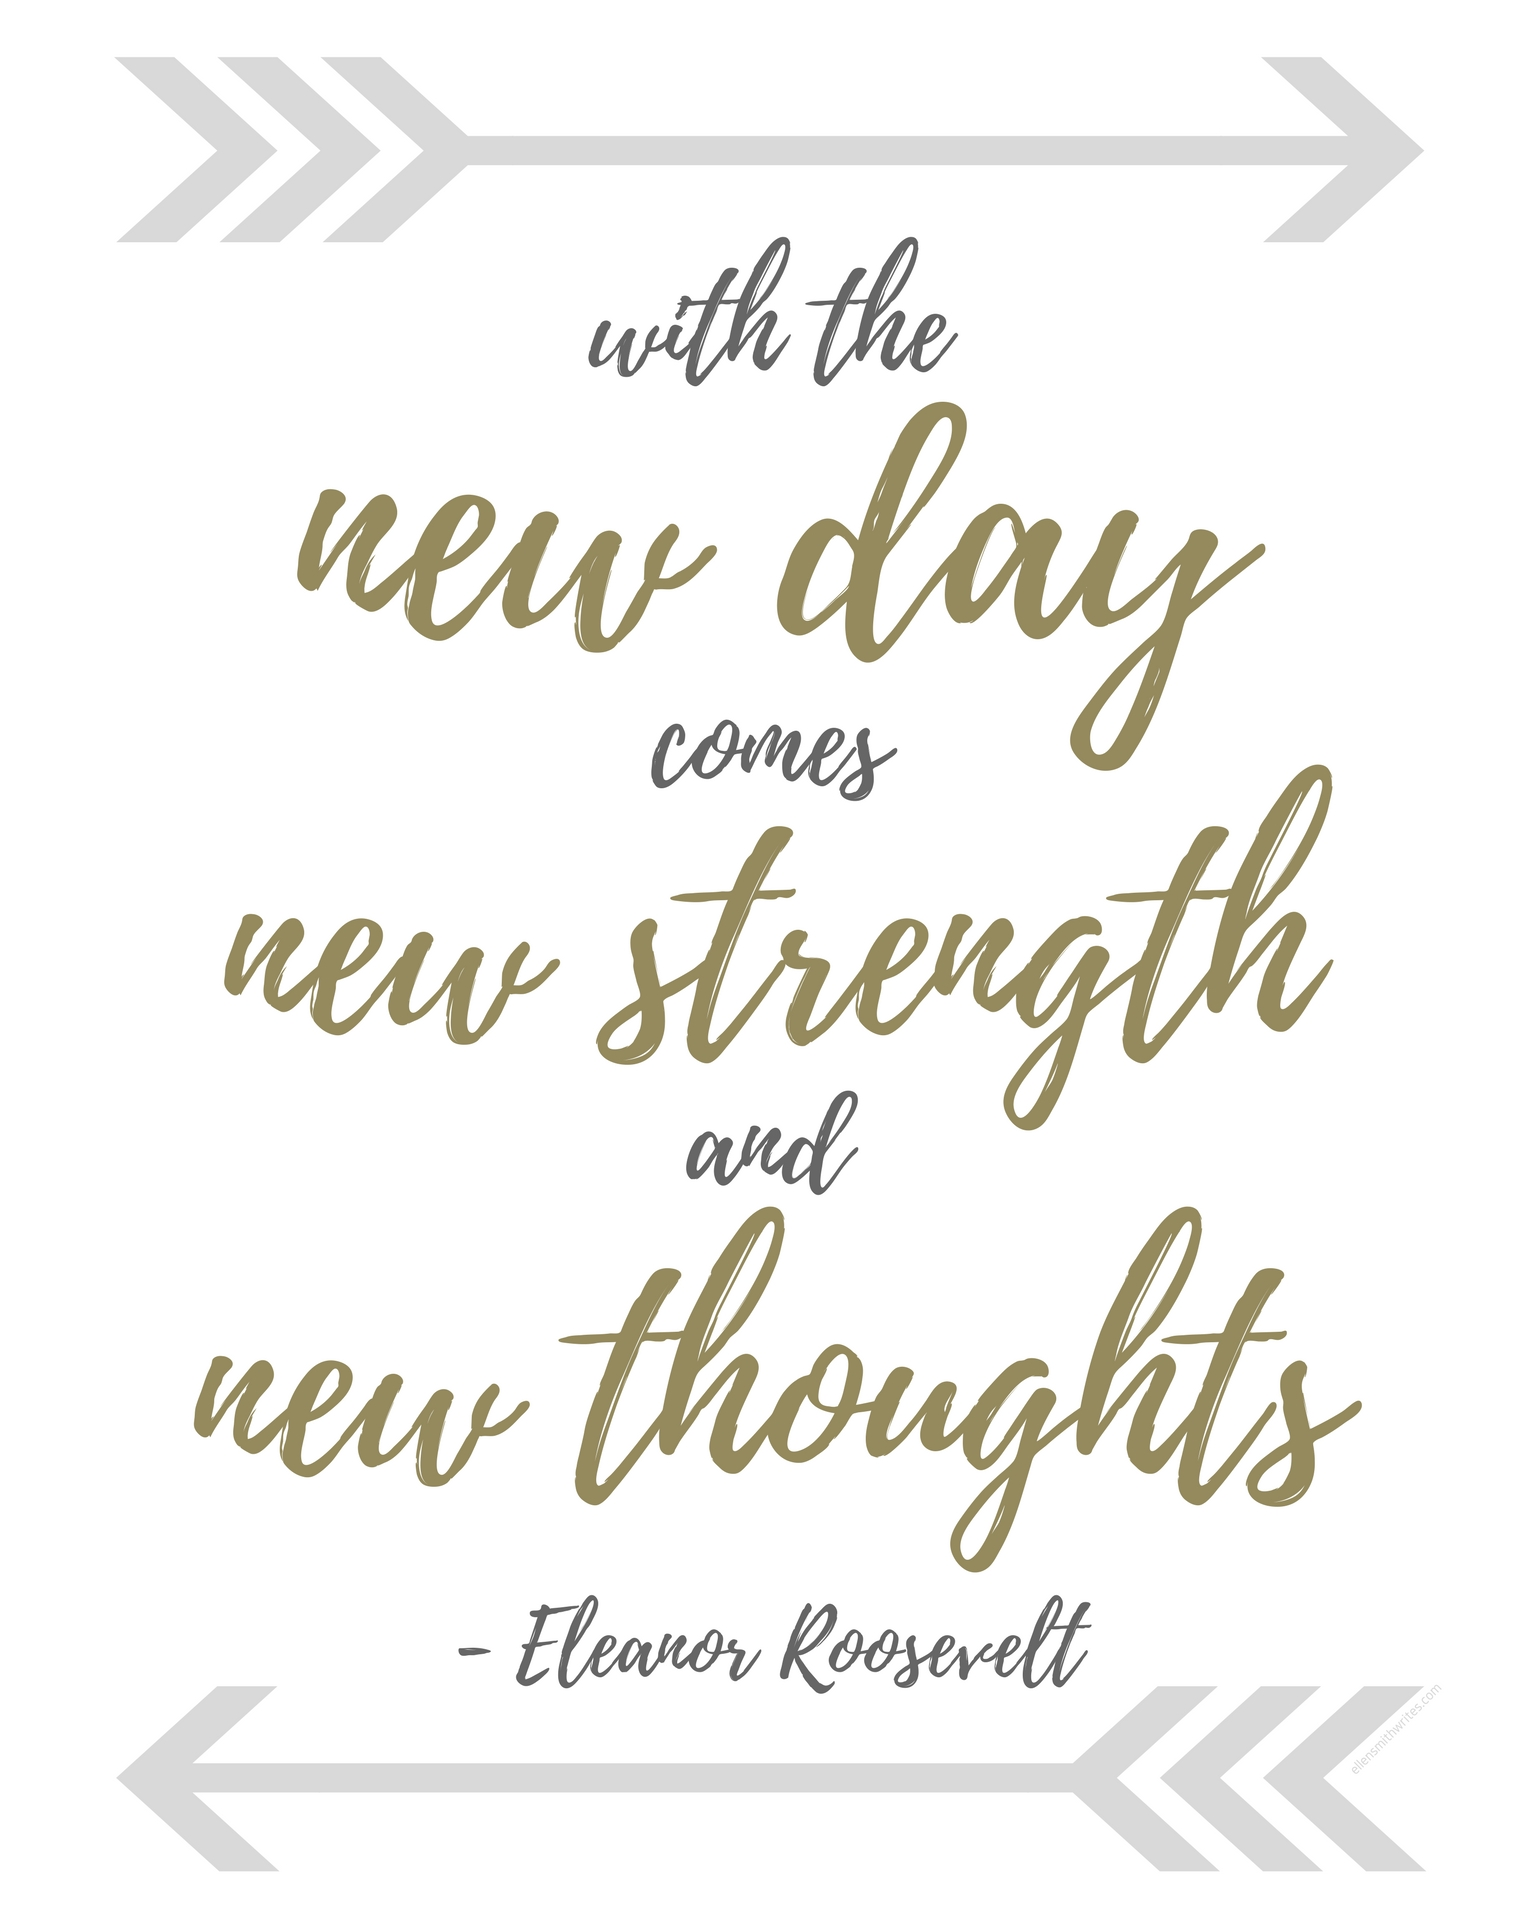 "Eleanor Roosevelt quote: ""With the new day comes new strength and new thoughts."" 